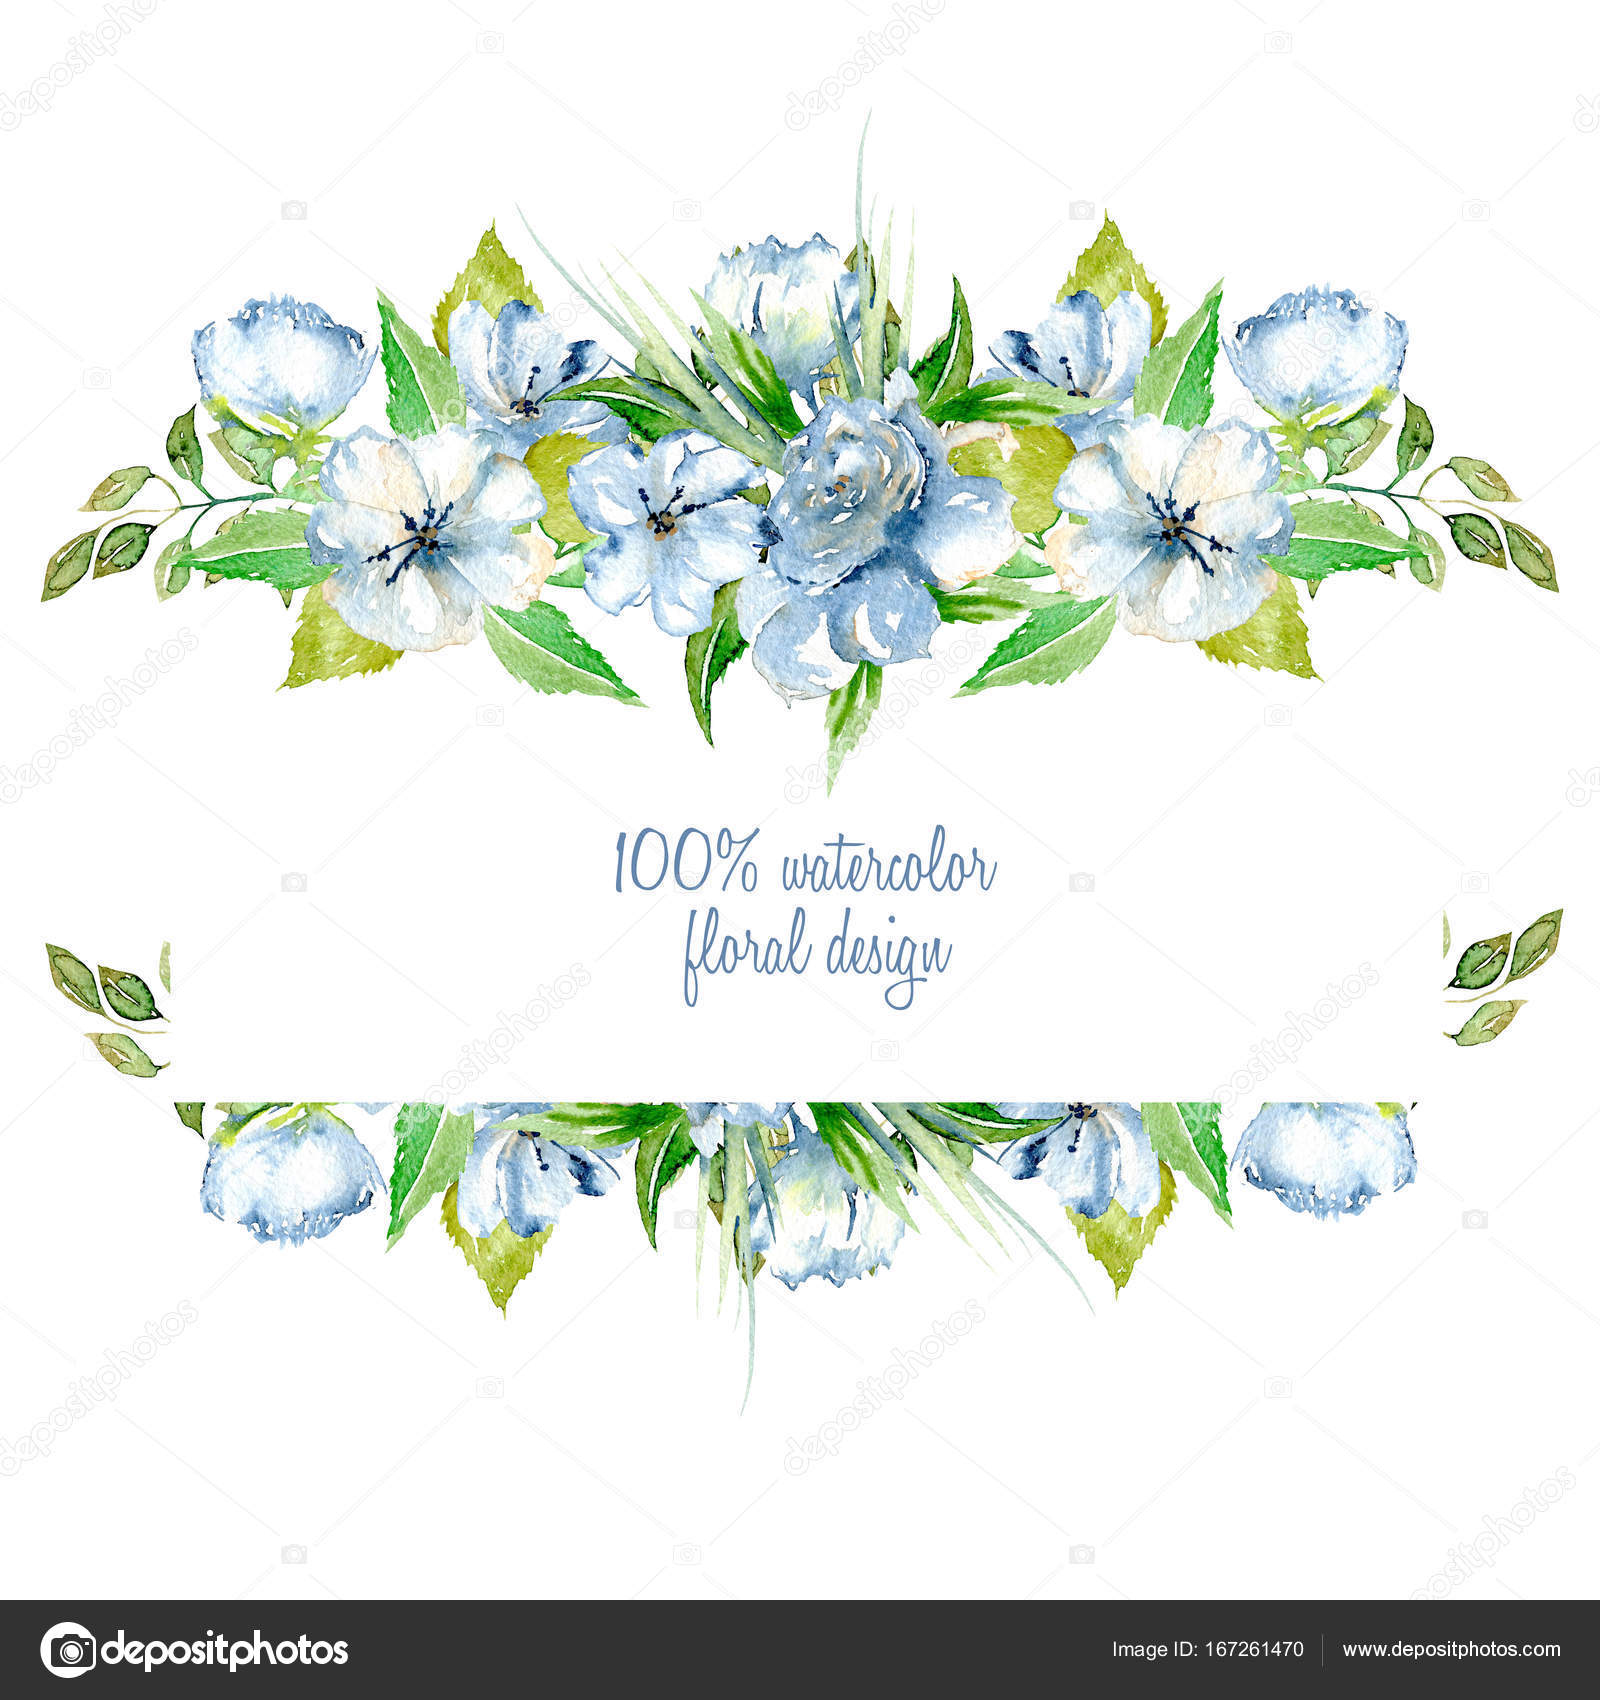 Frame Border With Simple Watercolor Blue Wildflowers And Green Fresh Leaves Hand Painted On A White Background Template Floral Design For Wedding Cards